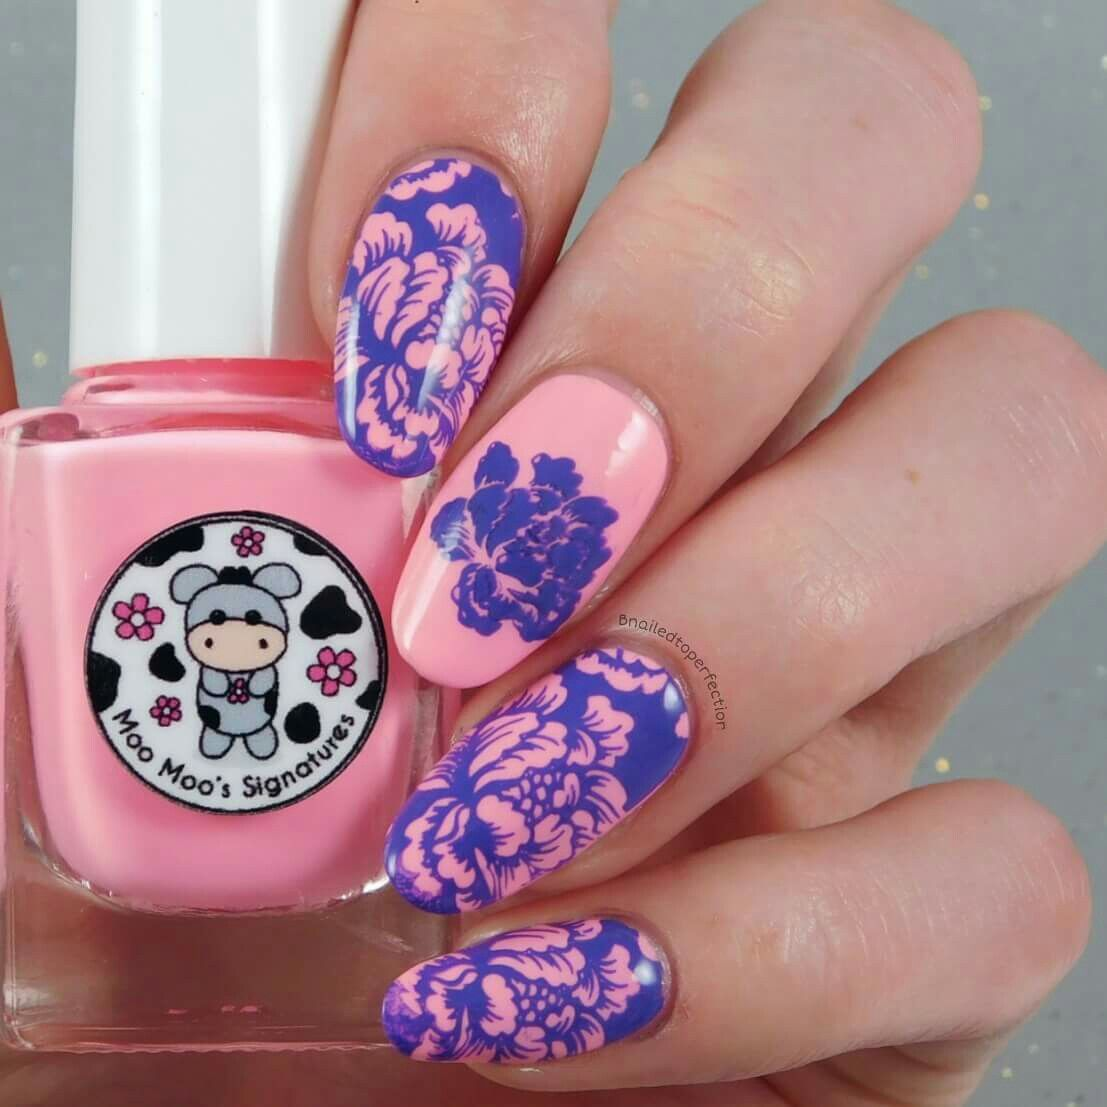 This is one of my favourite manis that I created with the Uber Chic collection 9 plates. These images are from plate 9-02 and I just love them! They are so pretty and eye catching. They remind me of flowery wallpaper. ~Bethany Whitfield from facebook~